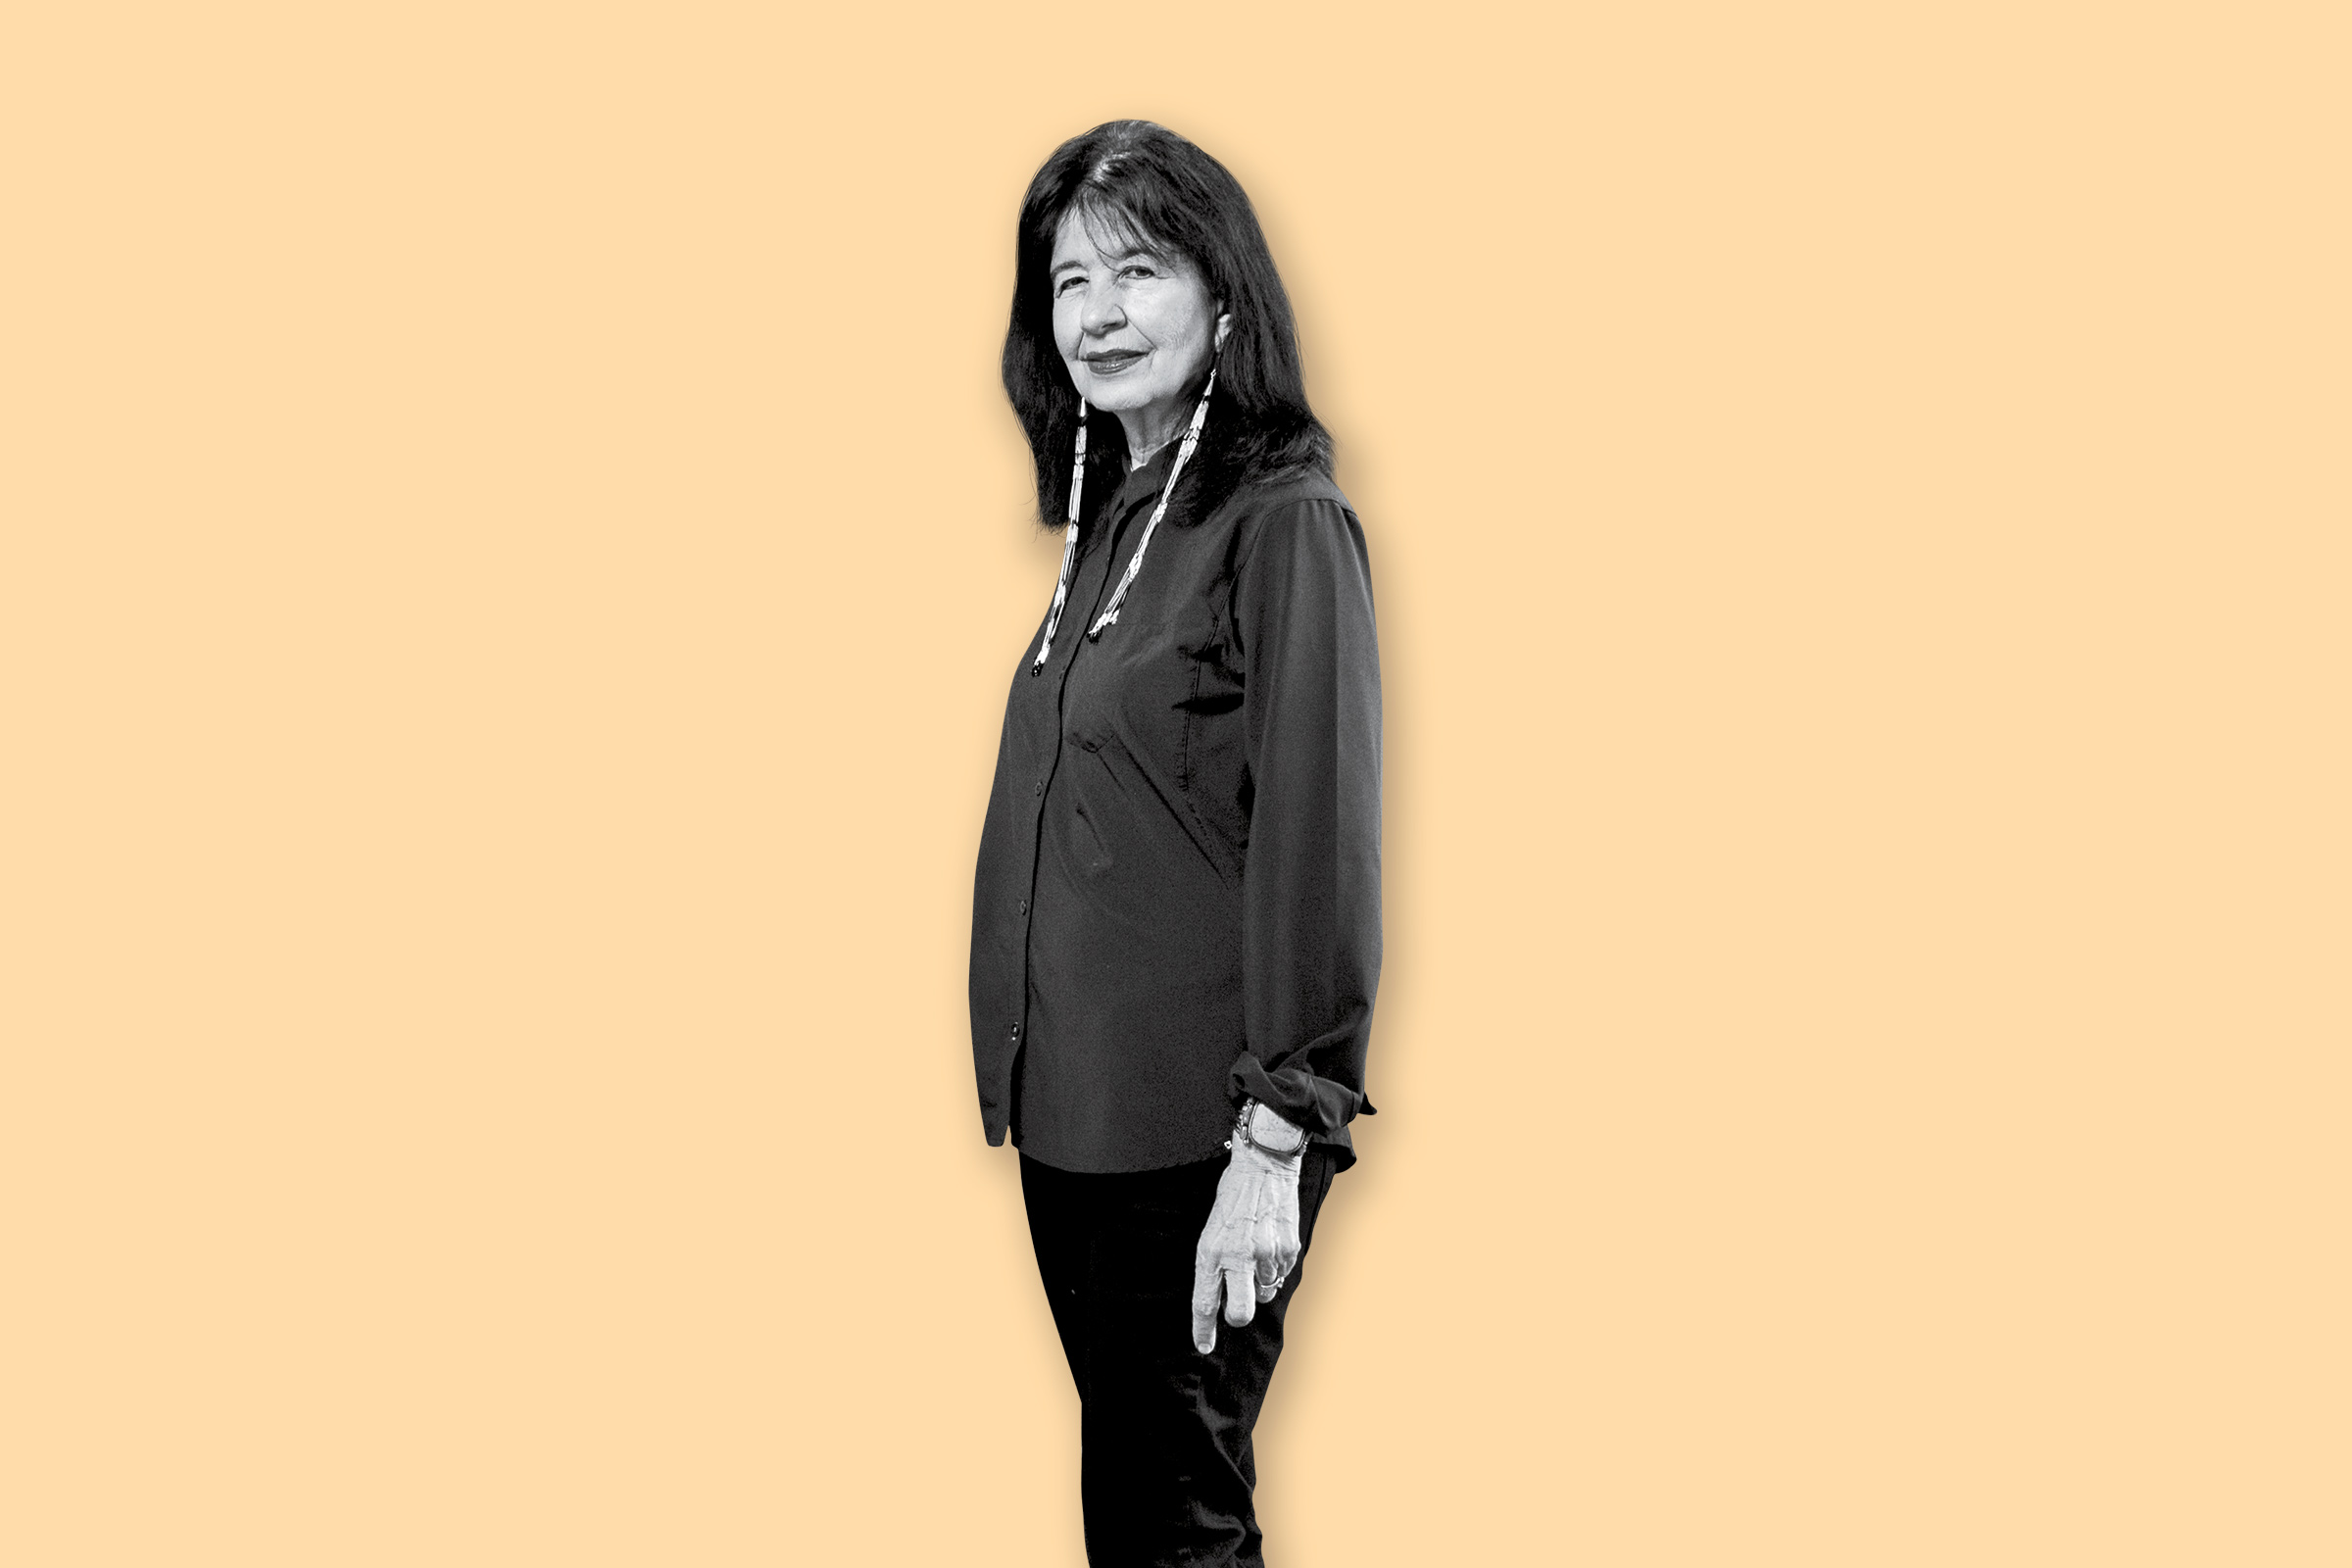 """We need something to counter the hate speech, the divisiveness, and it's possible with poetry,"" says Joy Harjo, the first Native American U.S. poet laureate."